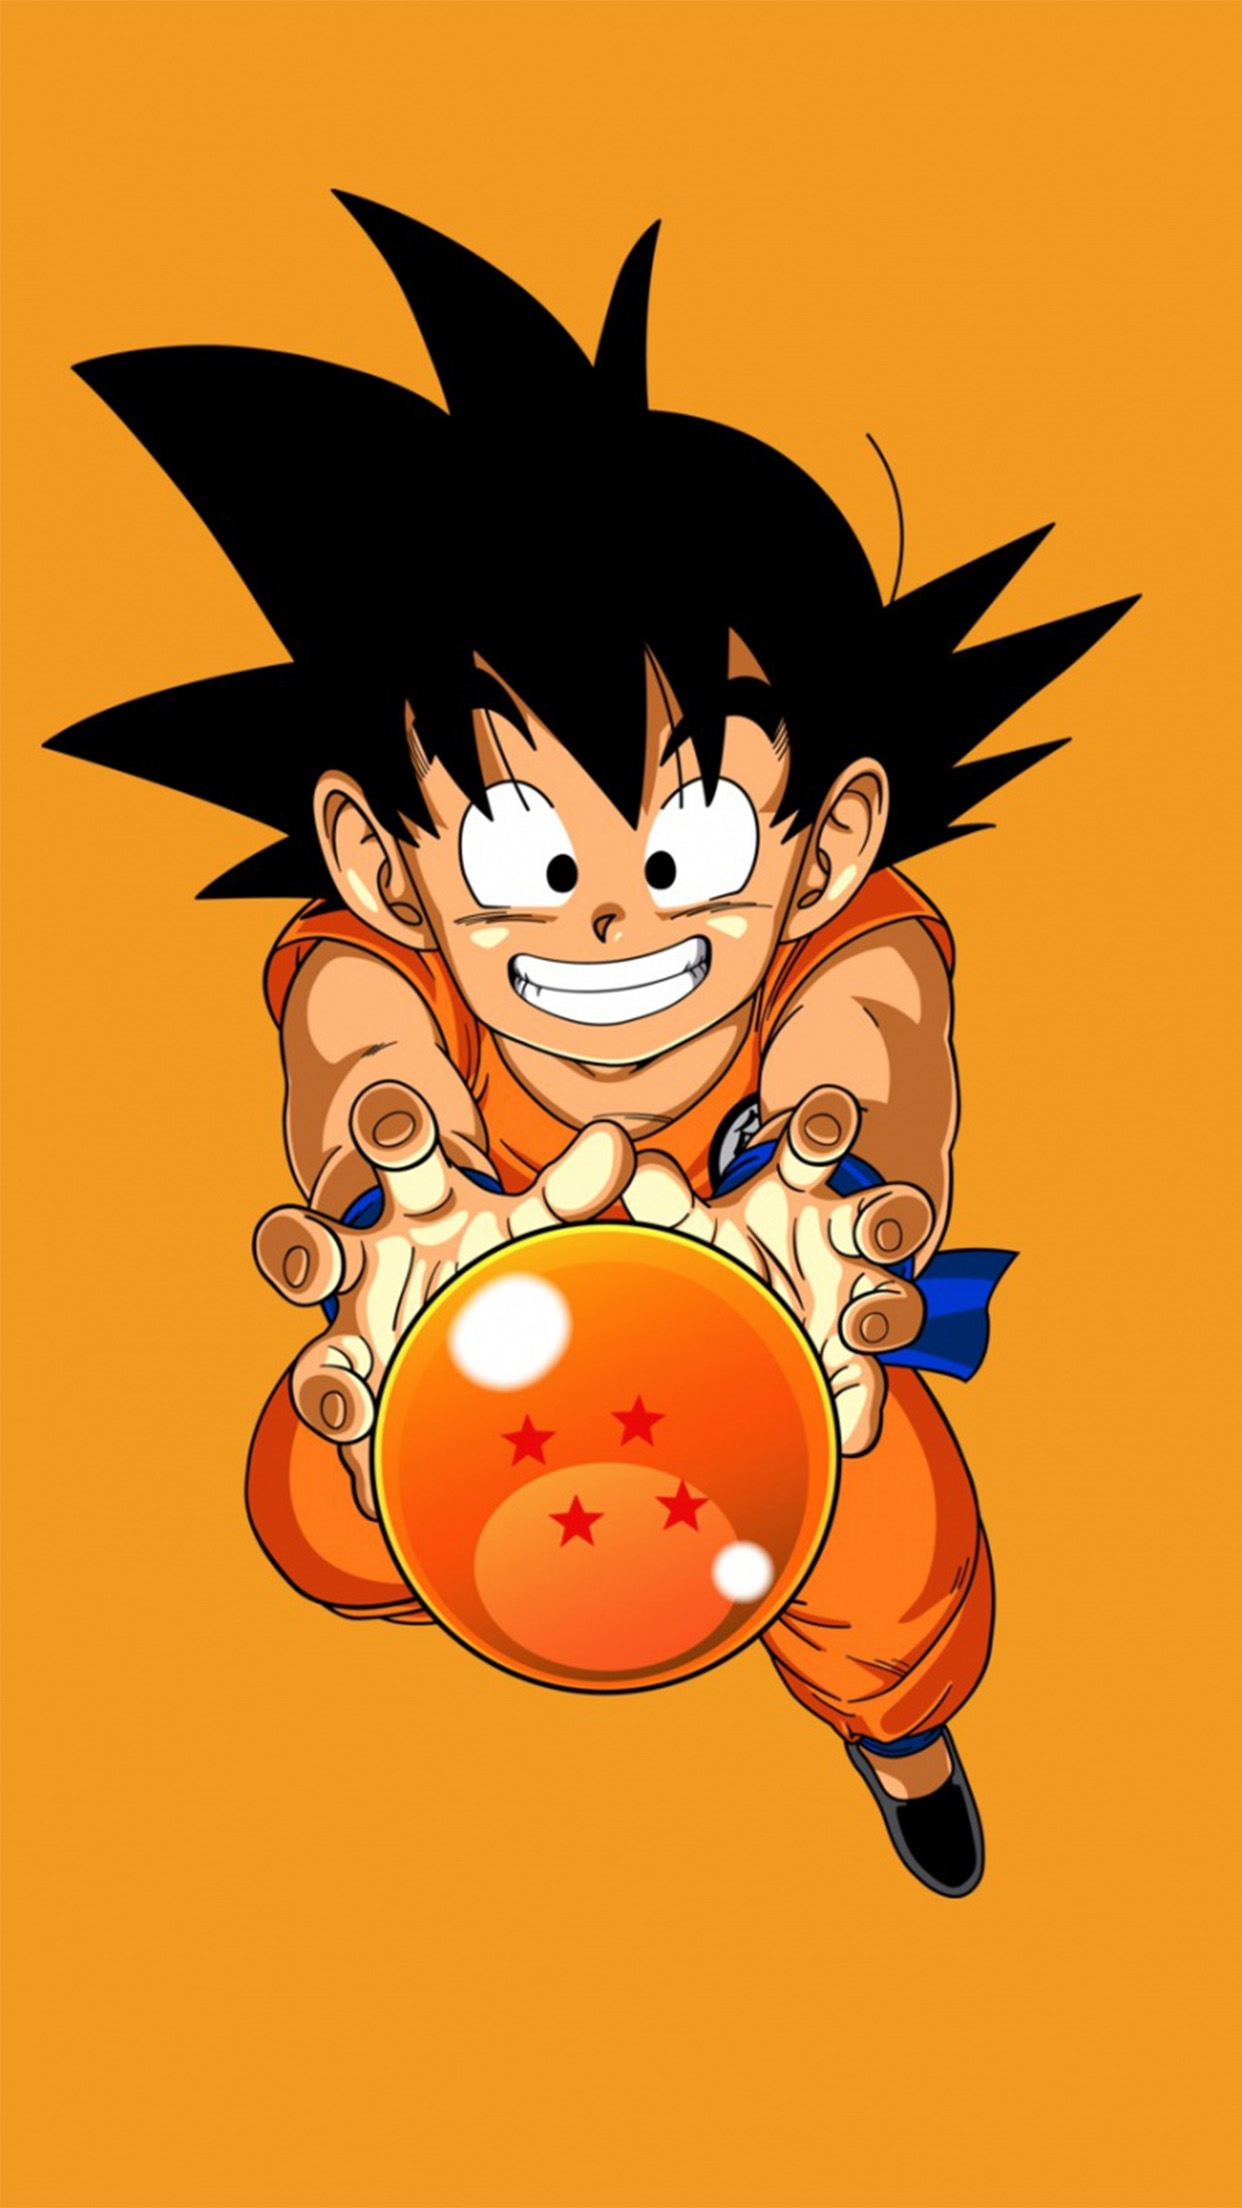 Sangoku Wallpaper for iPhone 11, Pro Max, X, 8, 7, 6 - Free Download on 3Wallpapers